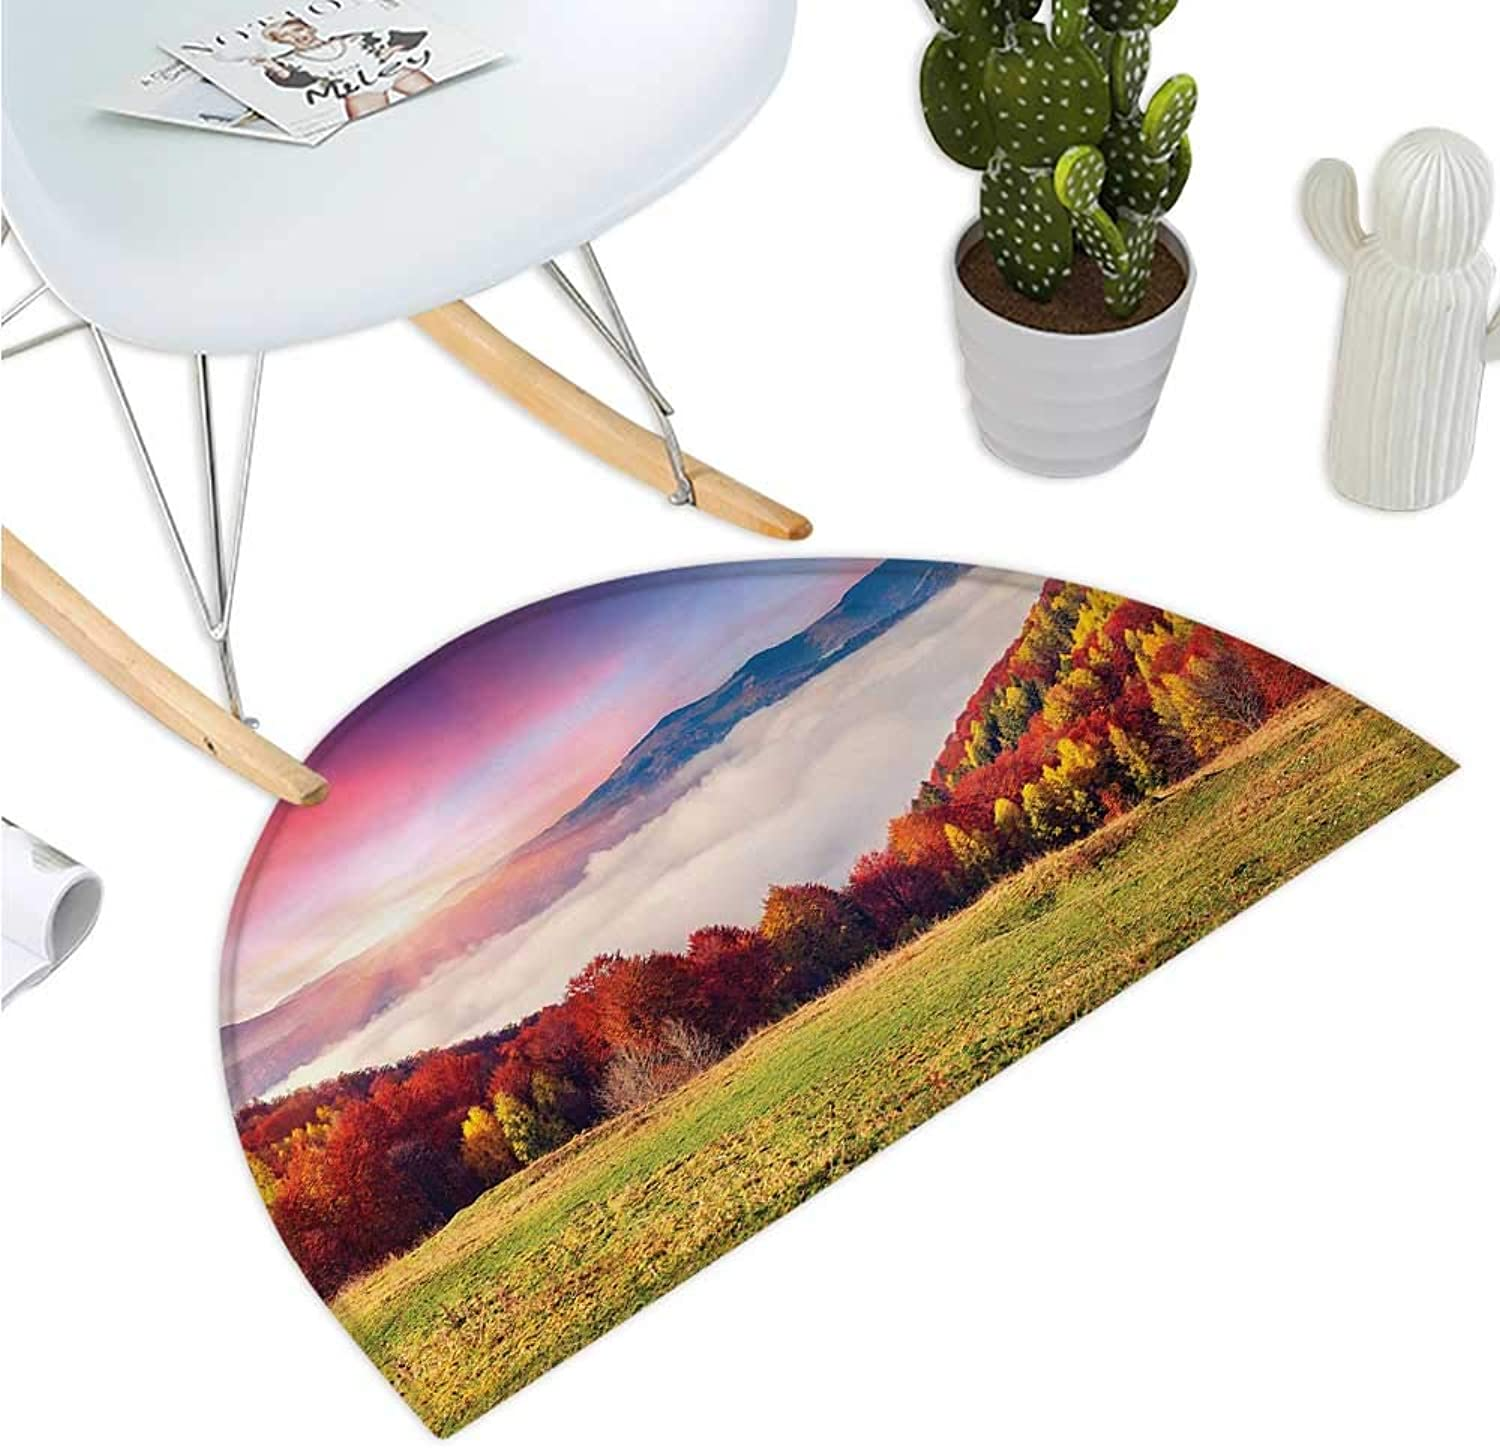 Nature Semicircular Cushion Pastoral colorful Autumn Morning in The Majestic Mountains European Peaks Print Entry Door Mat H 39.3  xD 59  Multicolor